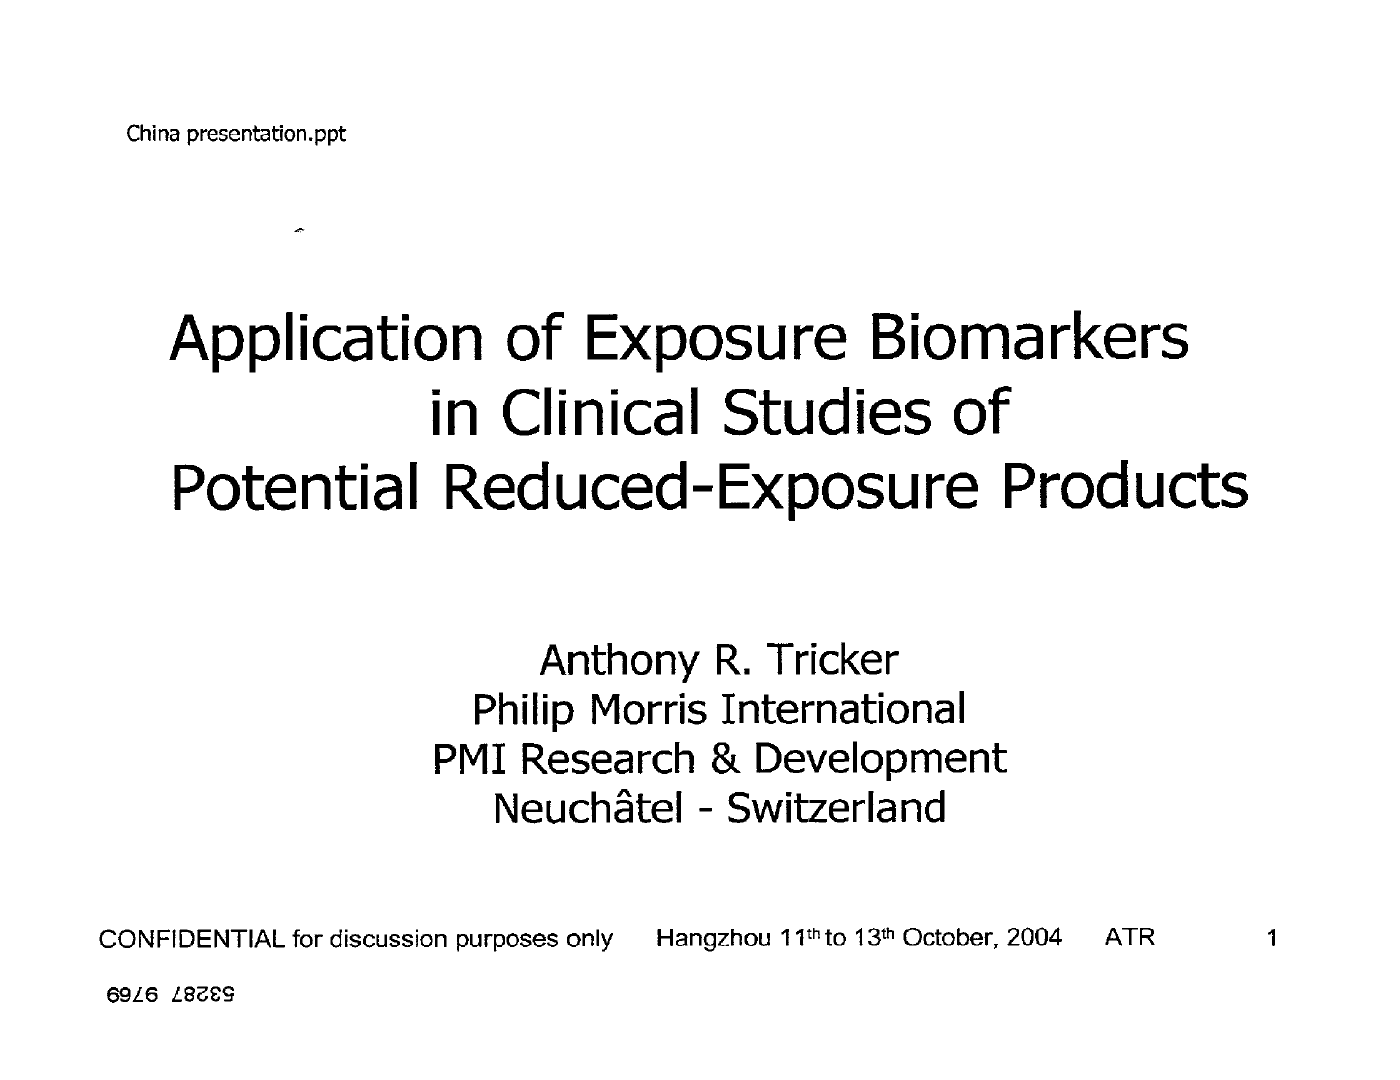 Tricker_Application of Exposure Biomarkers in Clinical Studies